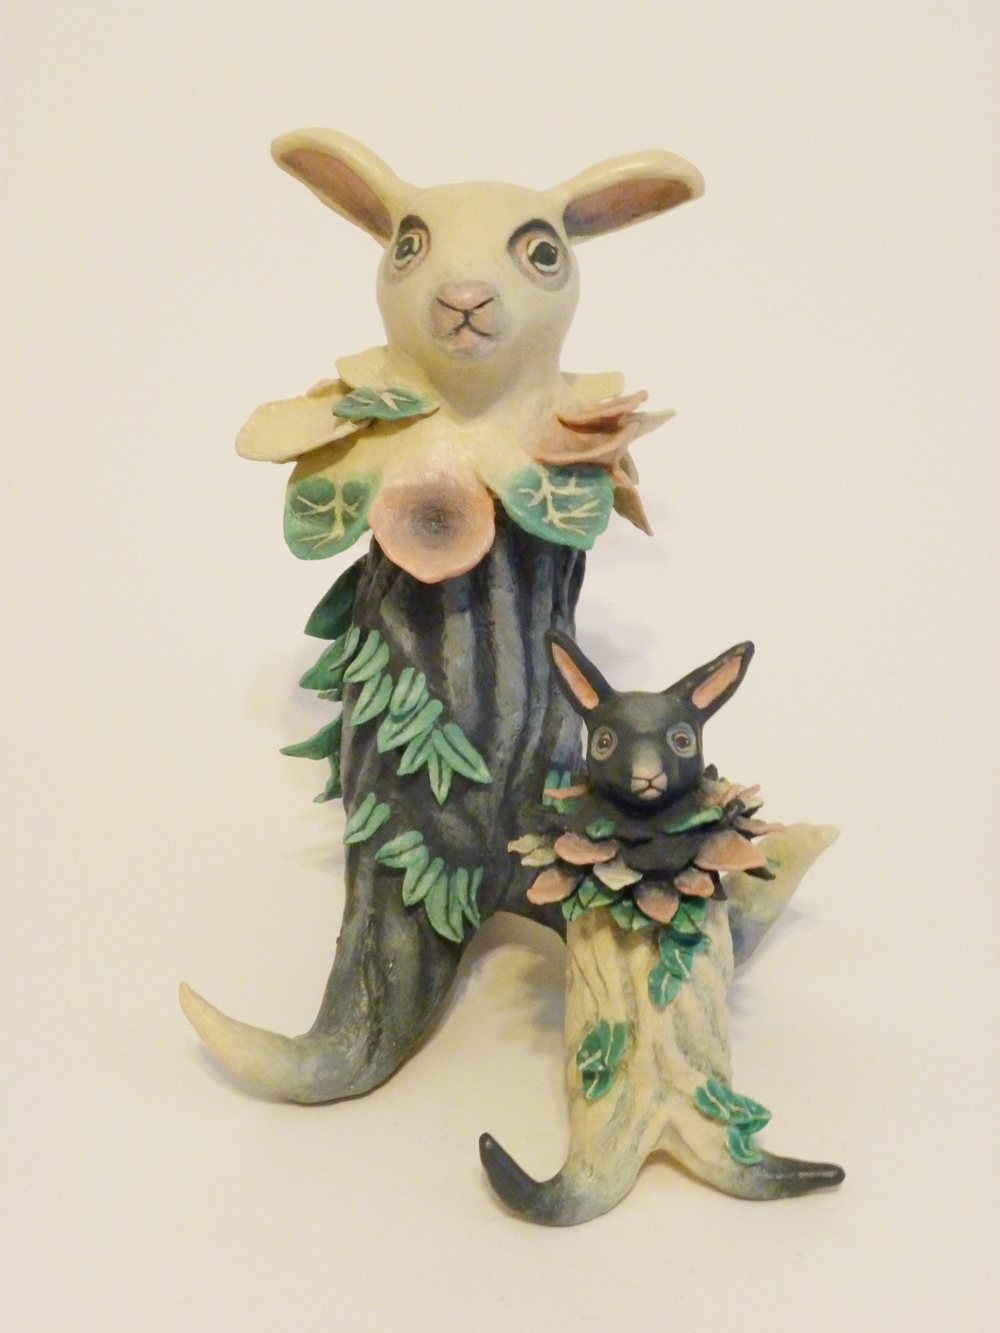 My set of 6 fantastical & whimsical sculptures (Bunny Plantimals which is plant + animal = plantimal) will be at the Jill McVarish Gallery in Astoria, OR, starting 10 November 2018 for 1 month.